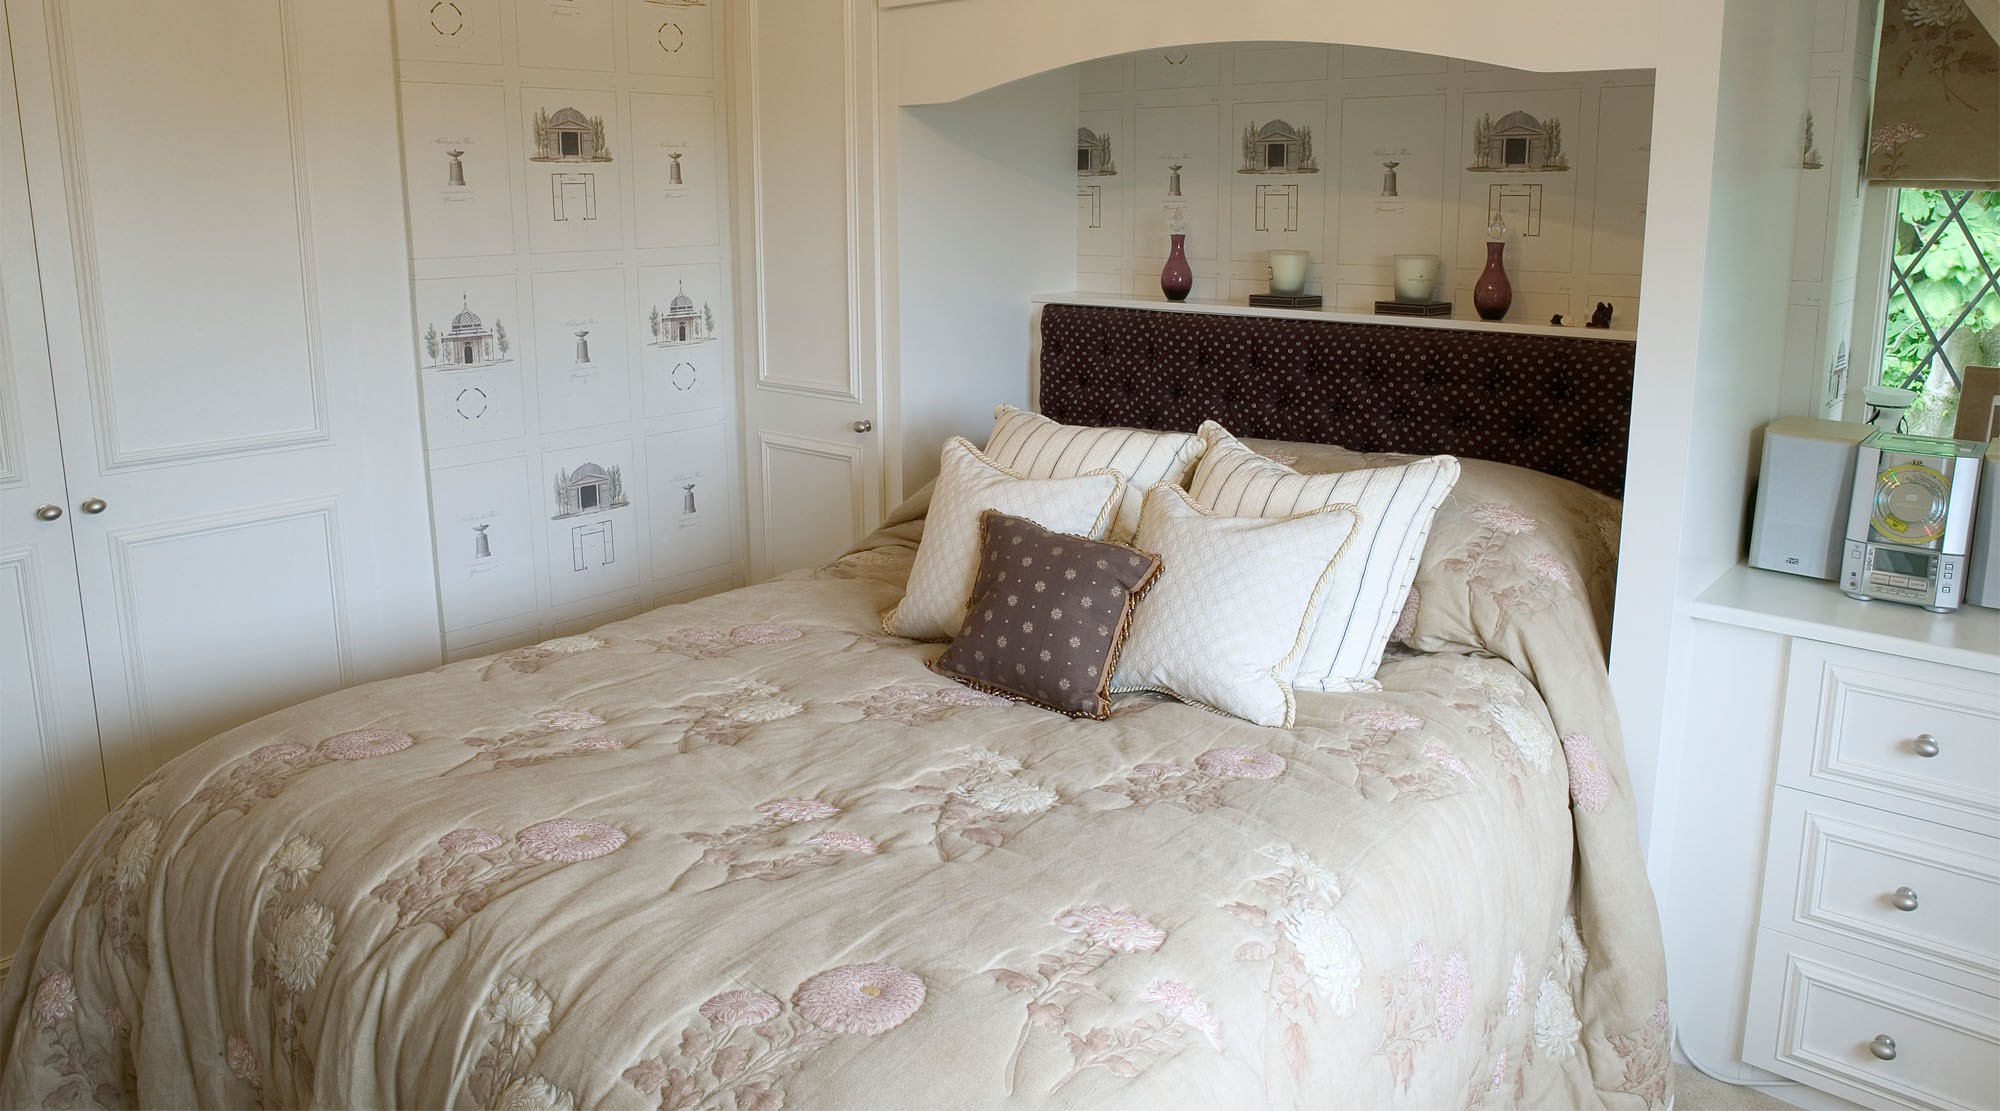 Cream and brown bedroom